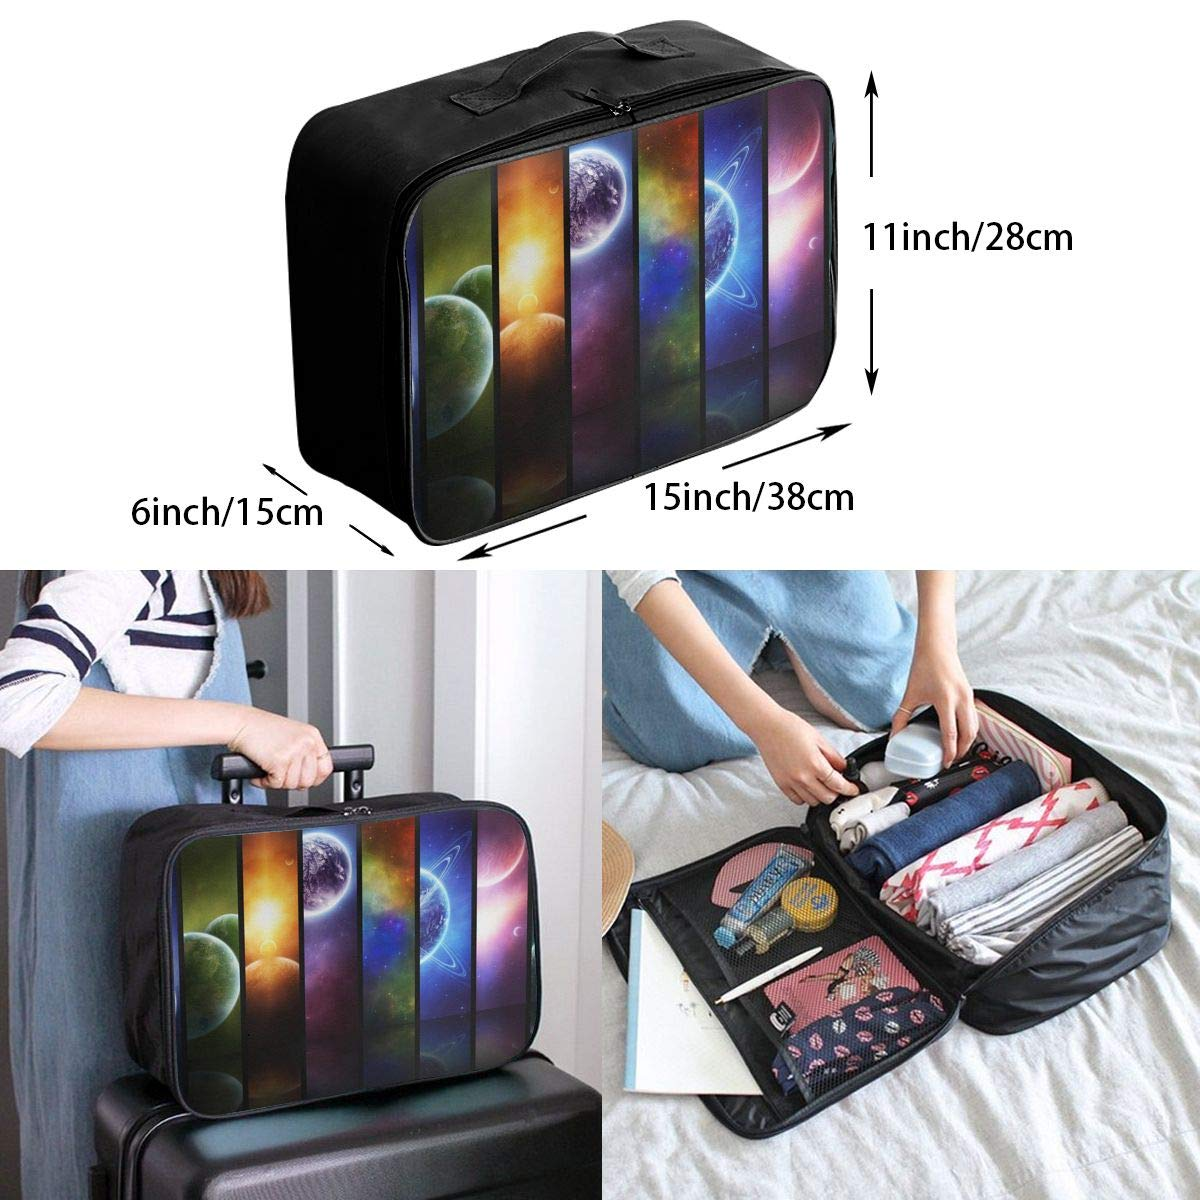 Travel Luggage Duffle Bag Lightweight Portable Handbag Planet Print Large Capacity Waterproof Foldable Storage Tote